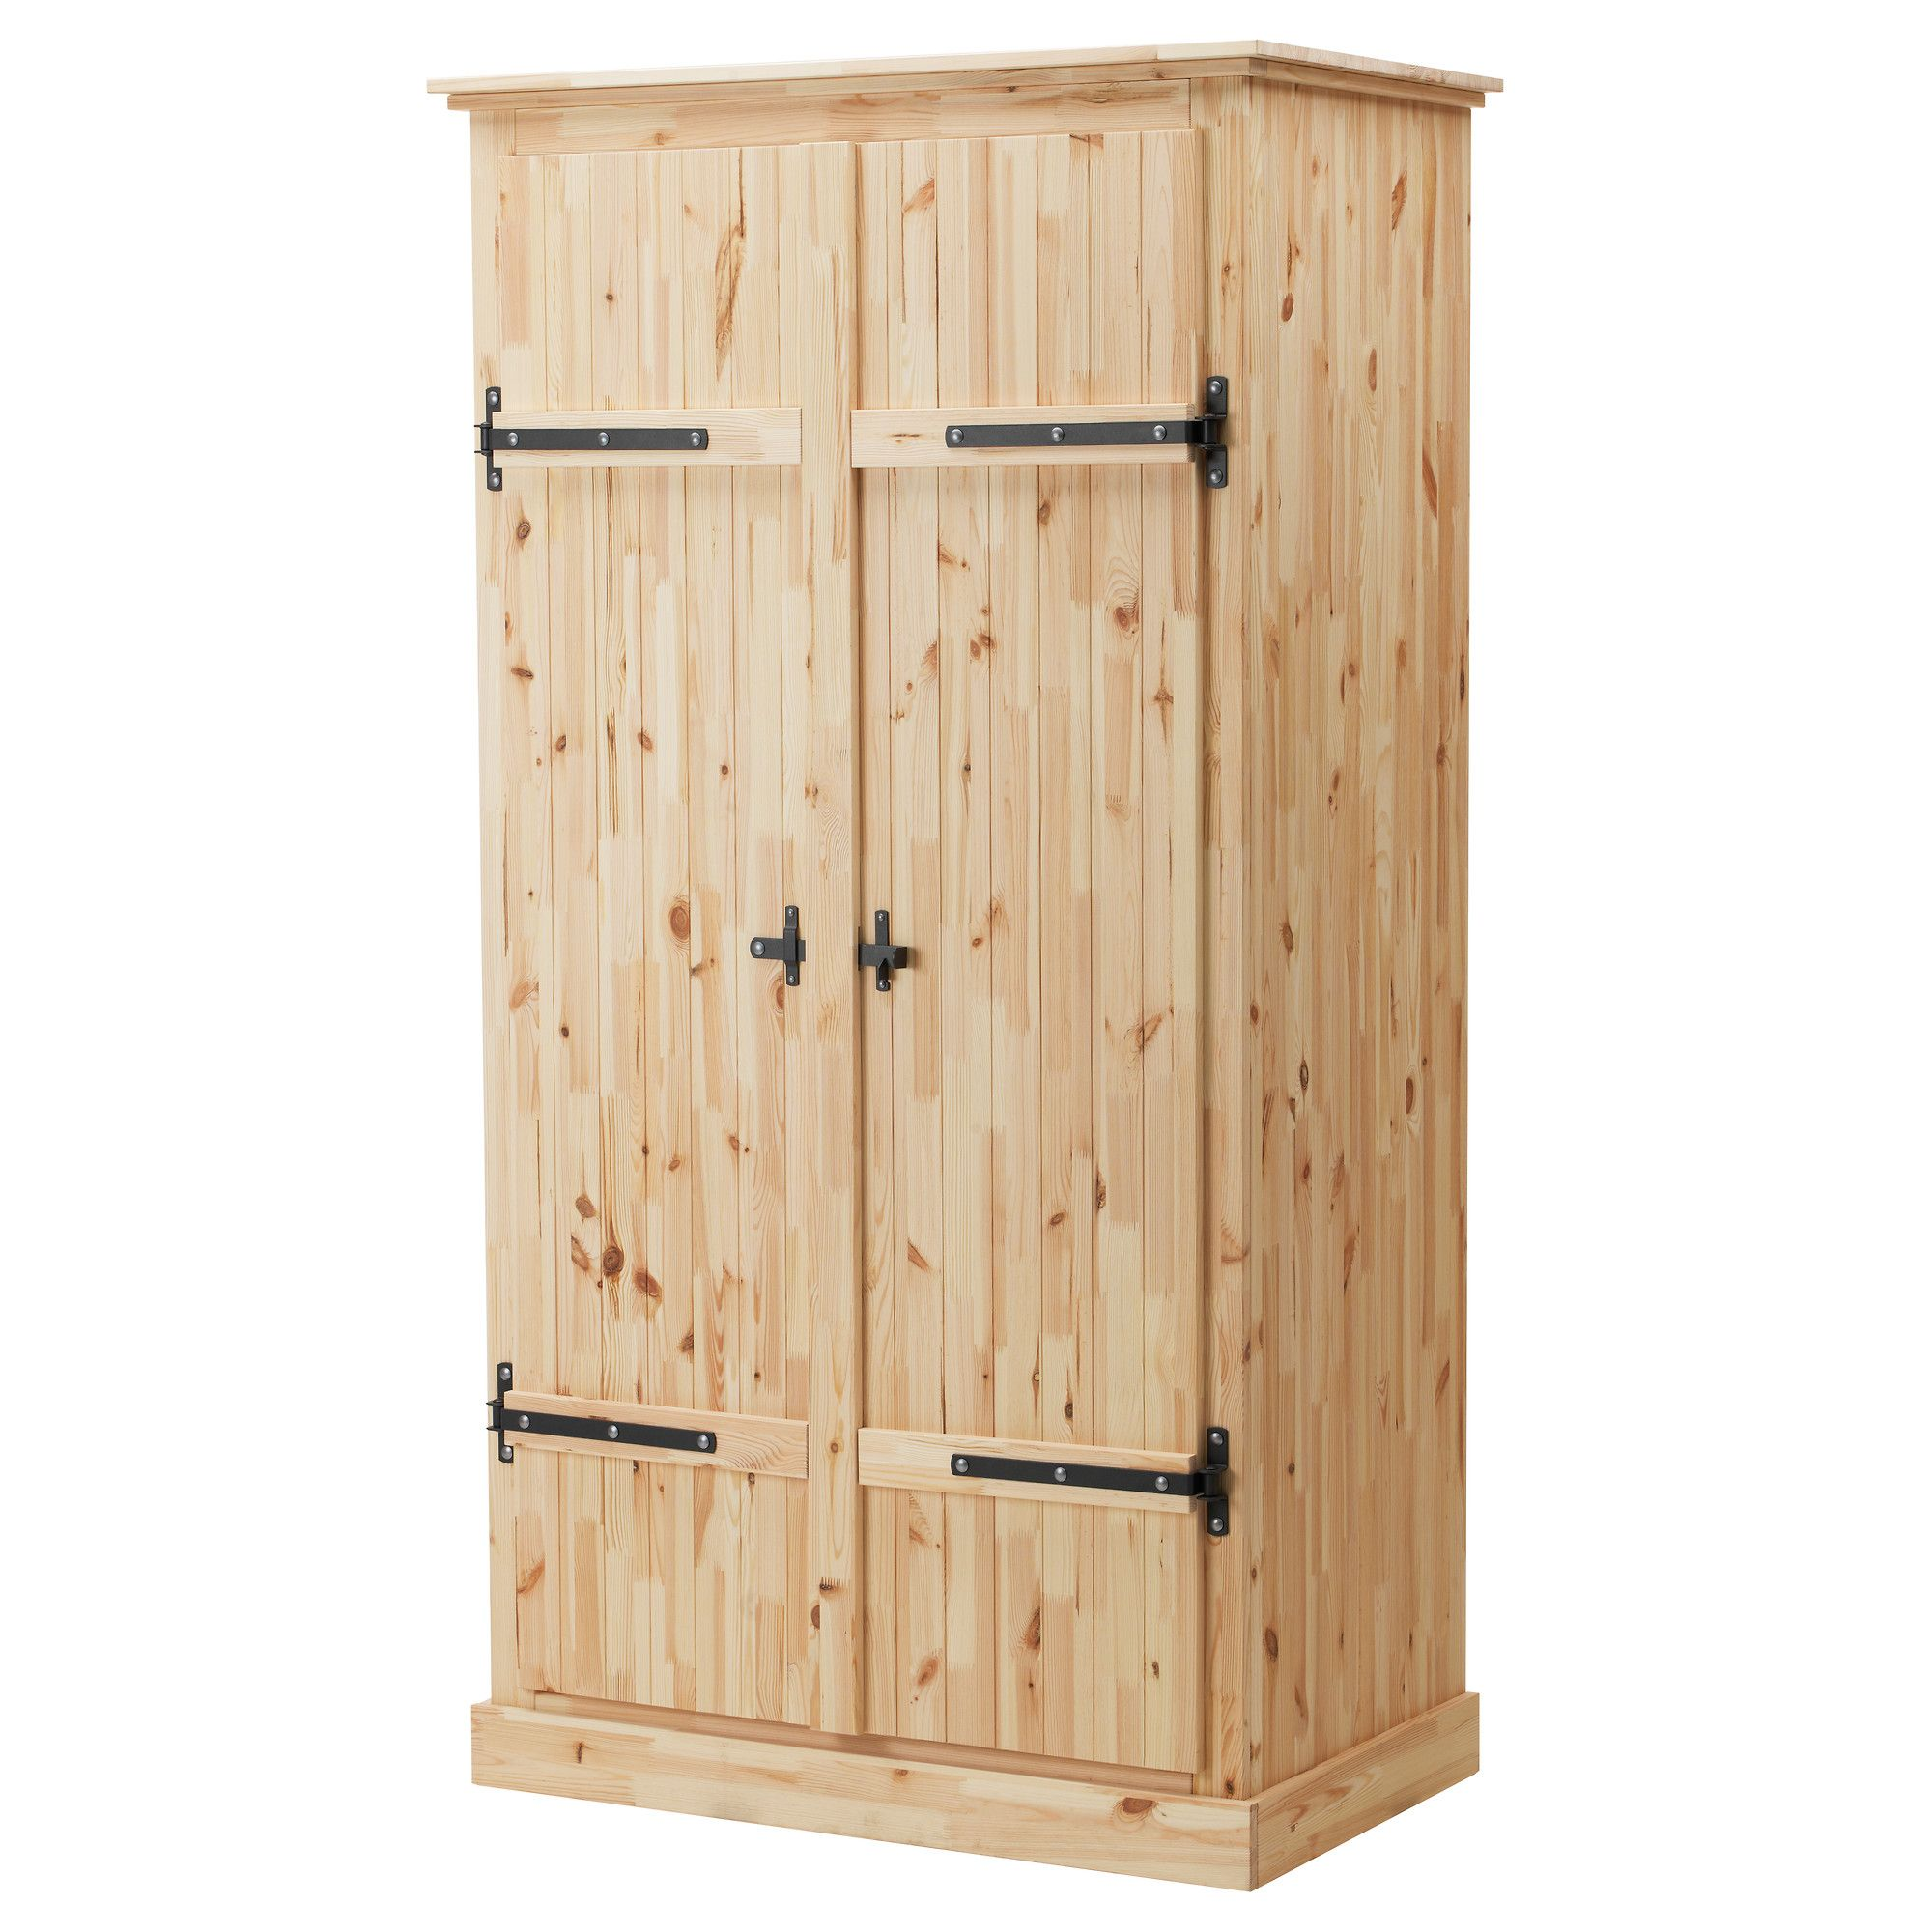 Bedroom Set with Wardrobe Closet | Cheap Wardrobe Closet | Cherry Wood Wardrobe Closet